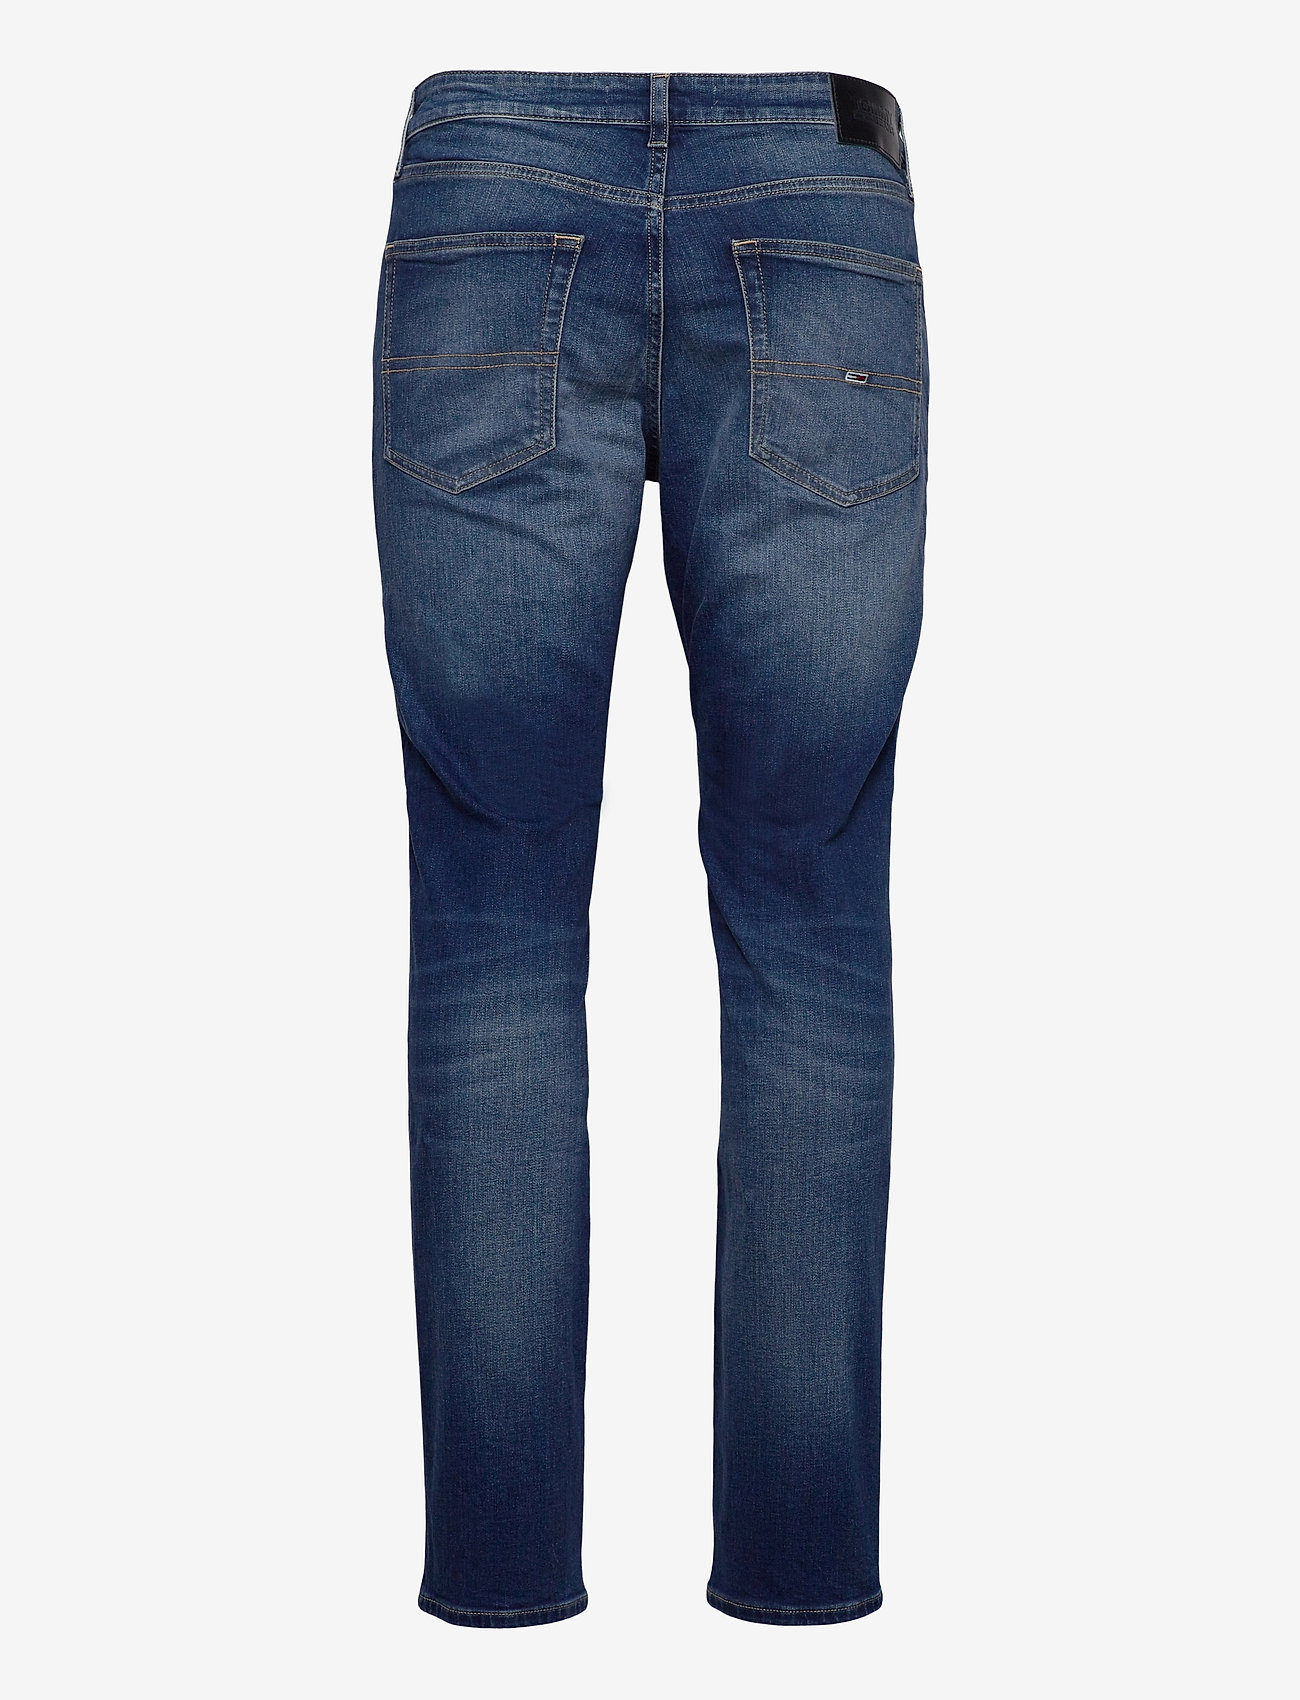 Tommy Jeans - SCANTON SLIM WMBS - slim jeans - wilson mid blue stretch - 1